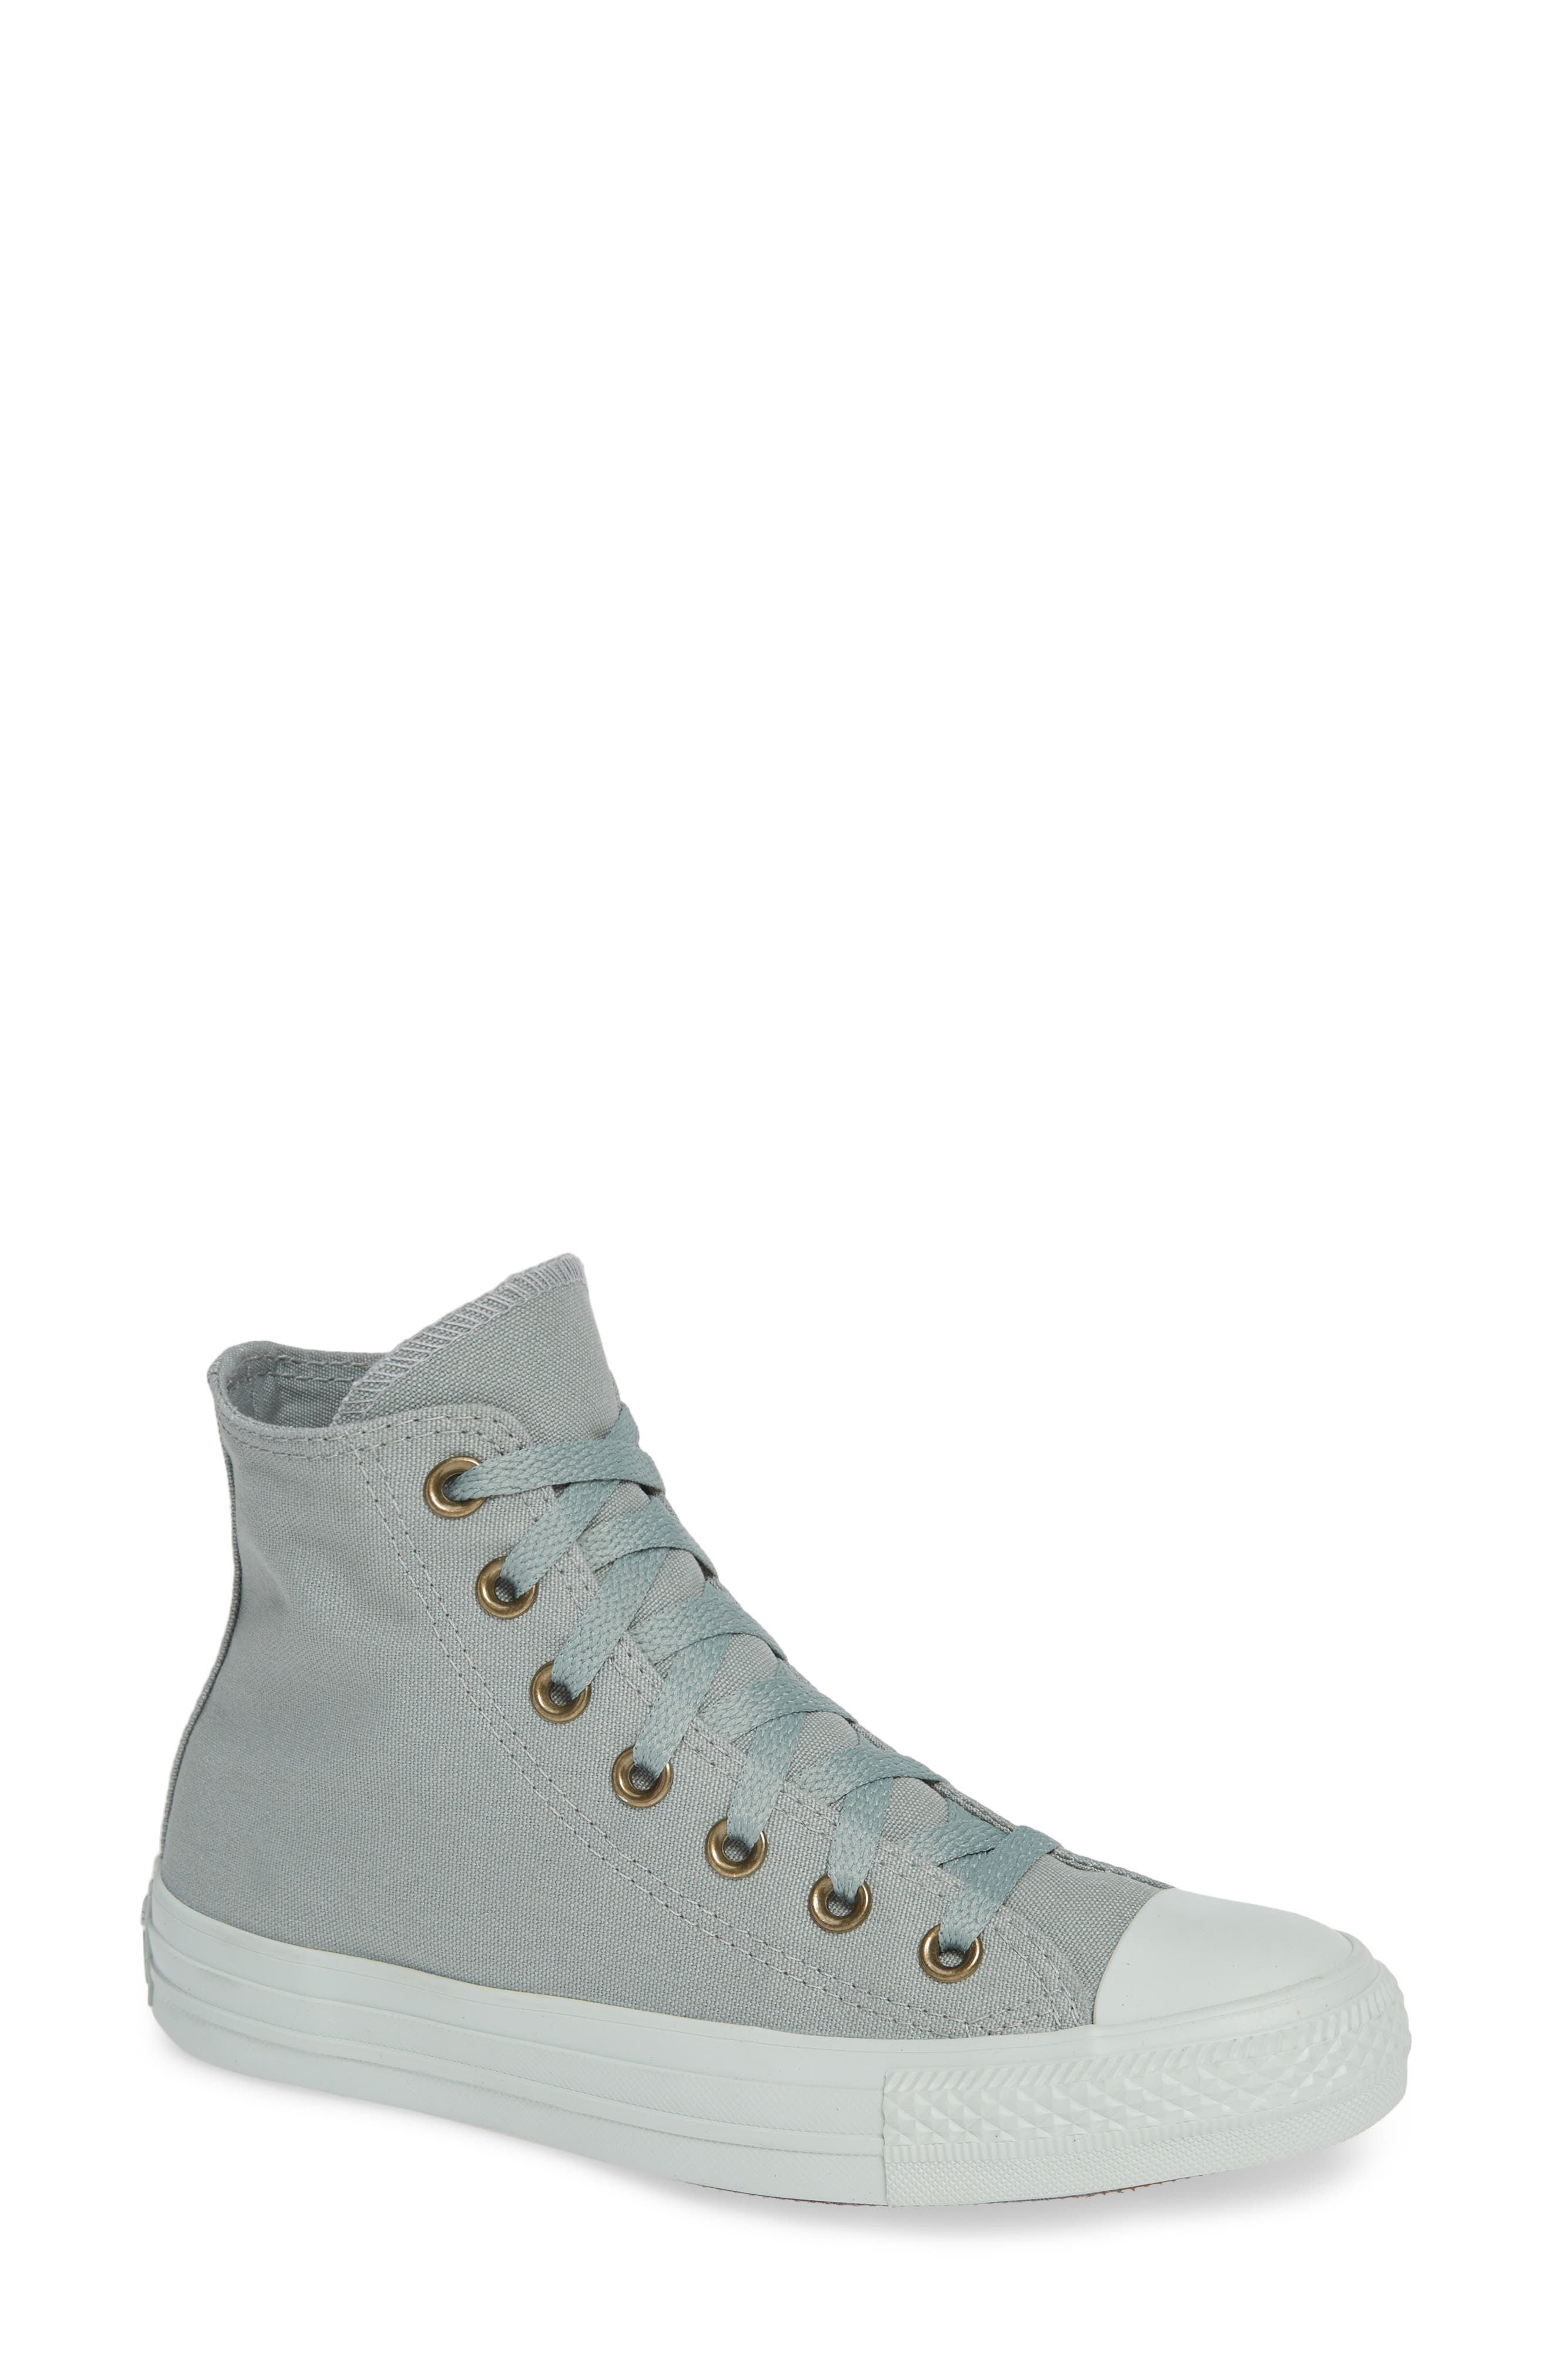 Chuck Taylor<sup>®</sup> All Star<sup>®</sup> Botanical High Top Sneaker,                             Main thumbnail 1, color,                             MICA GREEN